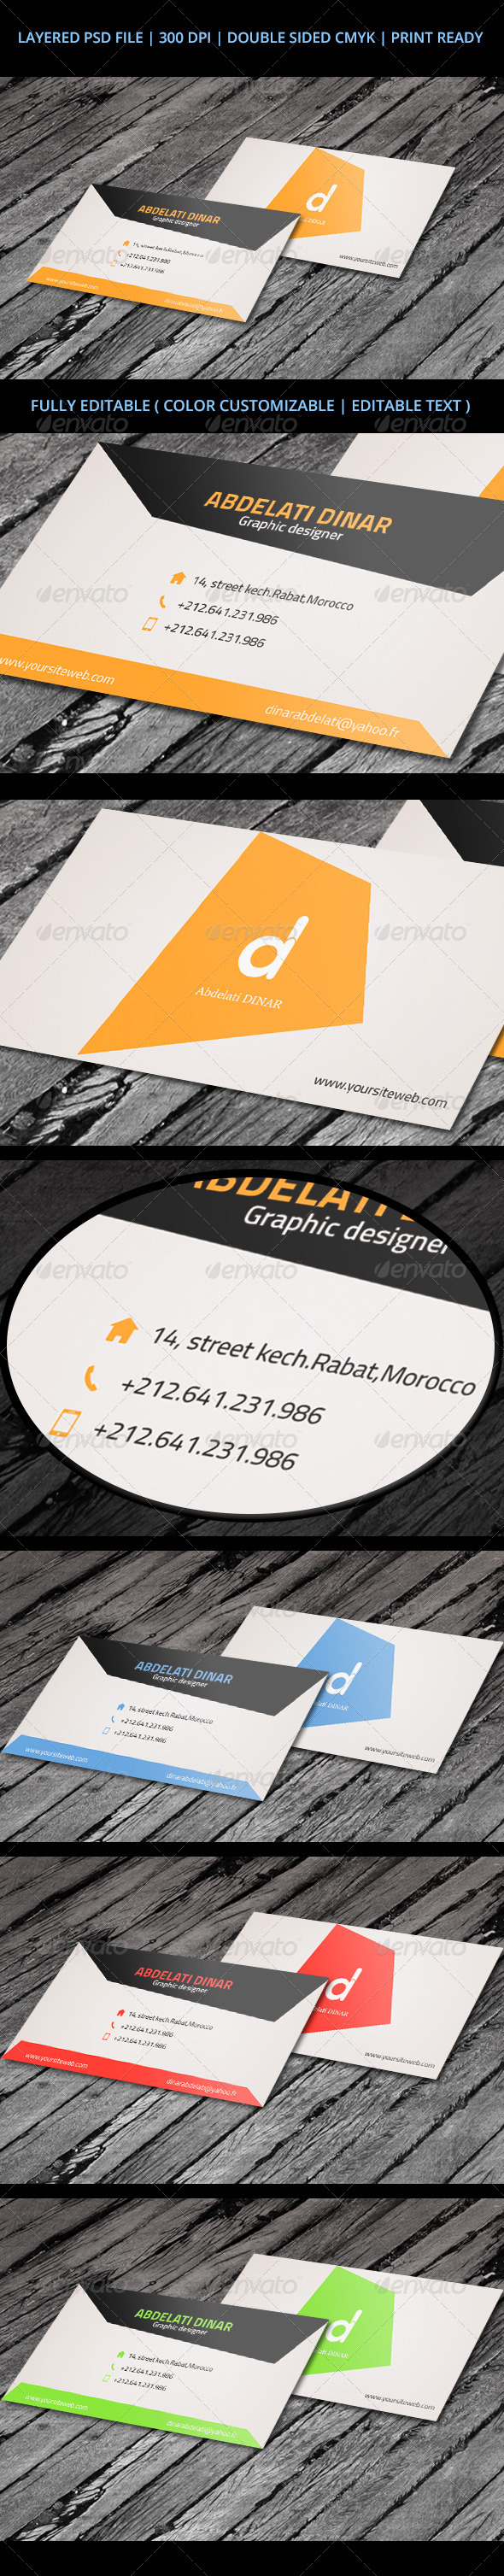 Business Card 04